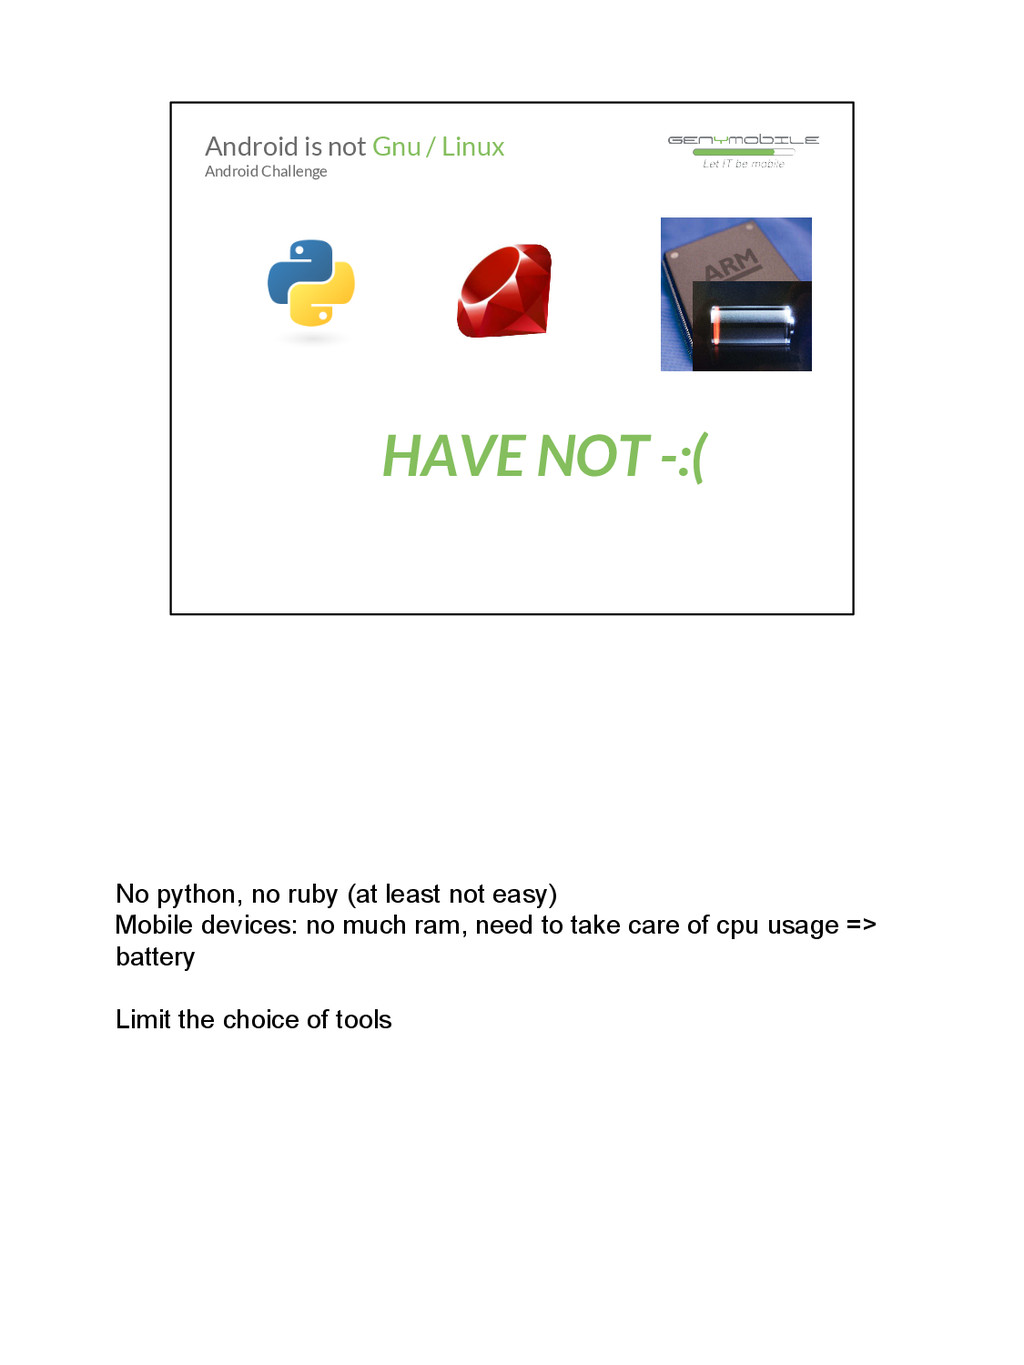 No python, no ruby (at least not easy) Mobile d...